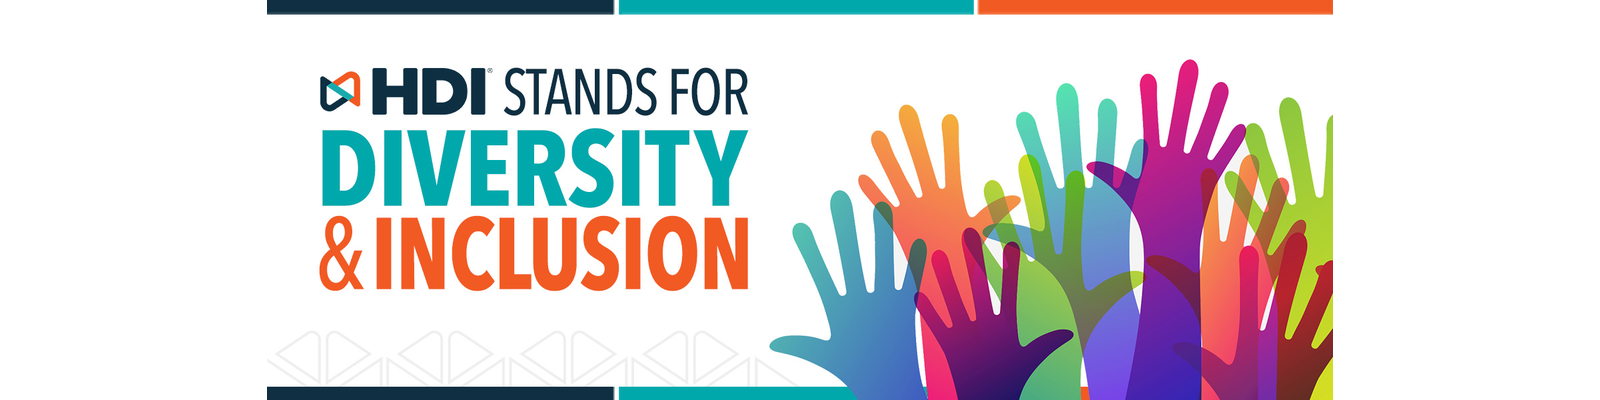 HDI Stands for Diversity and Inclusion